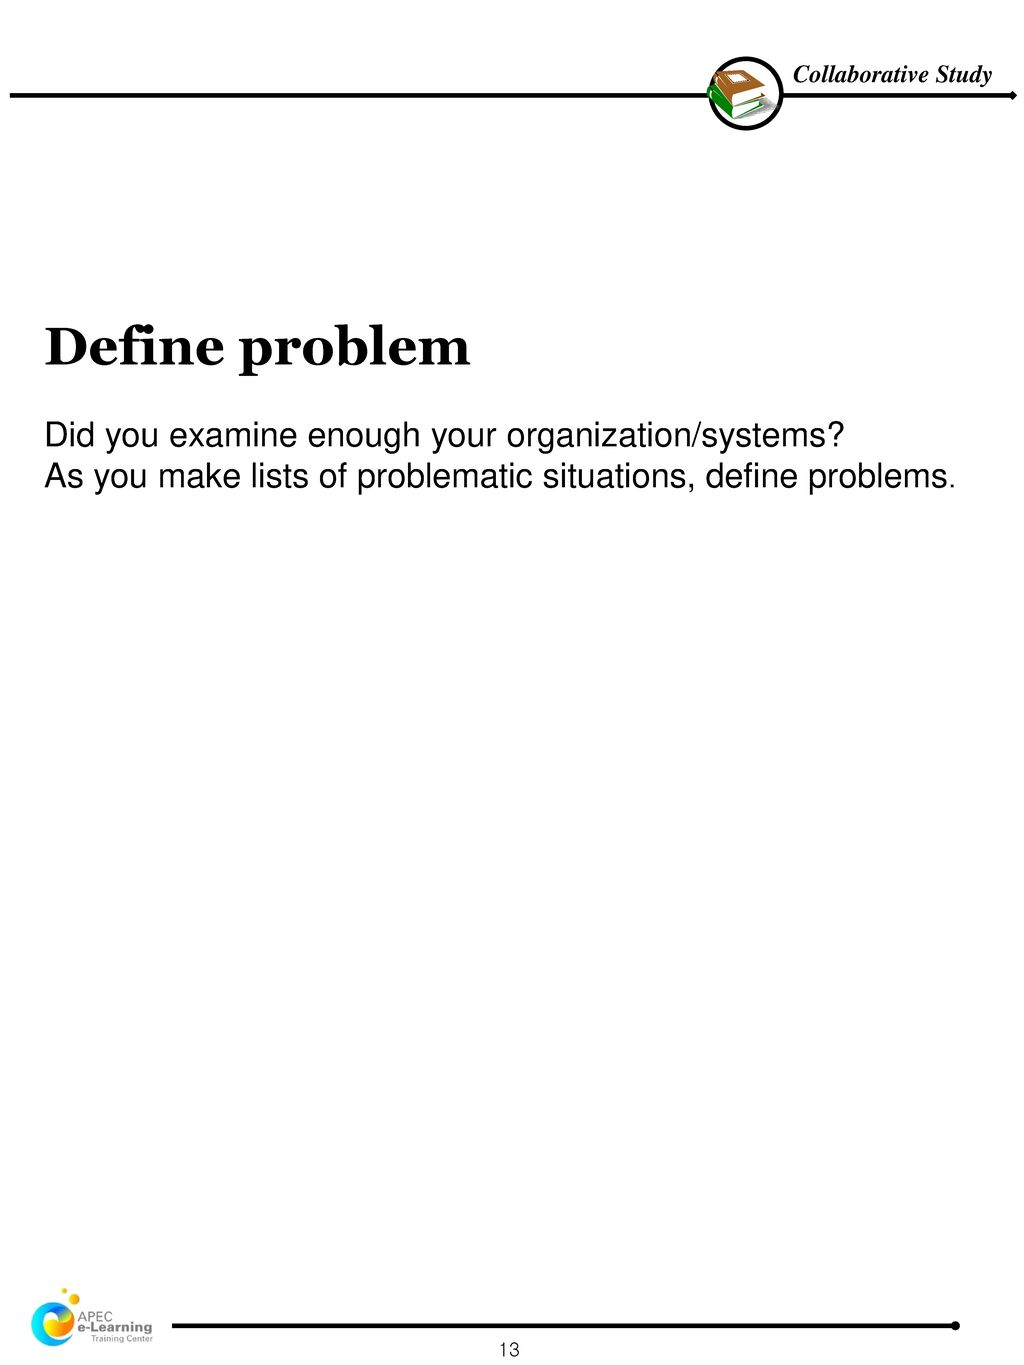 problem definition for library system System exception class exception class exception class _appdomain makes a text message available to inform the user of the nature of the error and to suggest action to resolve the problem a class library that in turn wraps calls to methods in the net framework class library or other.